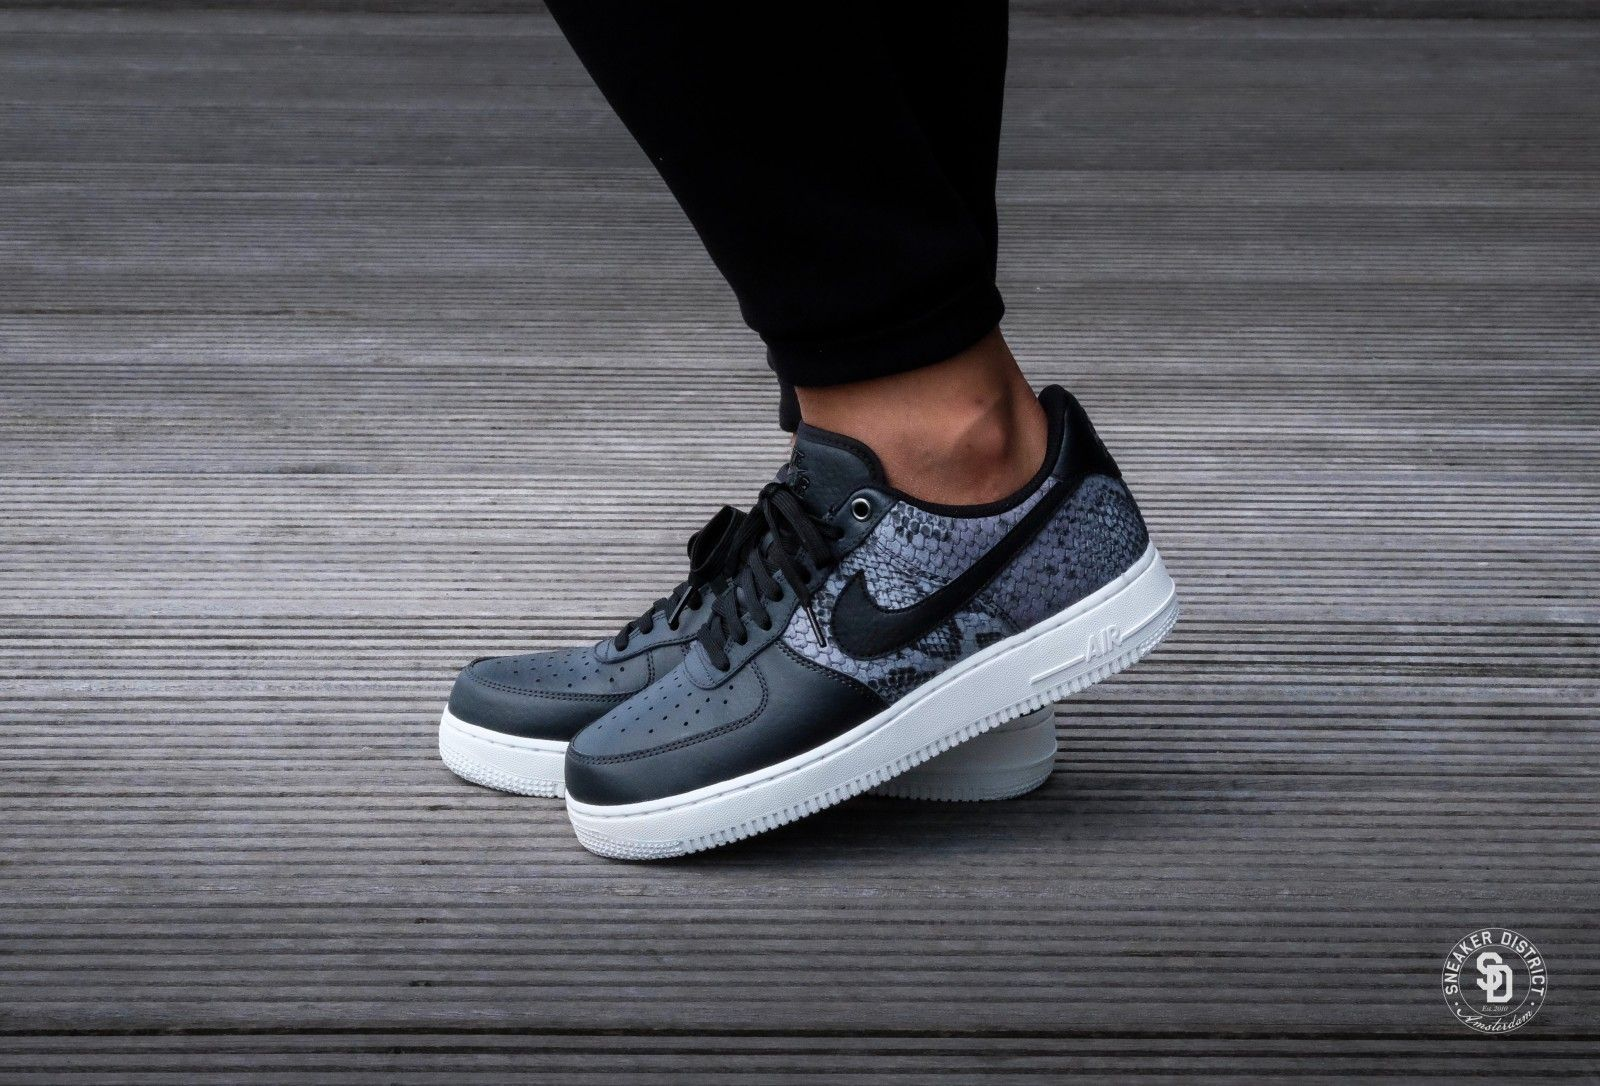 nouveau produit bc3a3 b9af3 Nike Air Force 1 '07 LV8 Anthracite/Black-Summit White ...